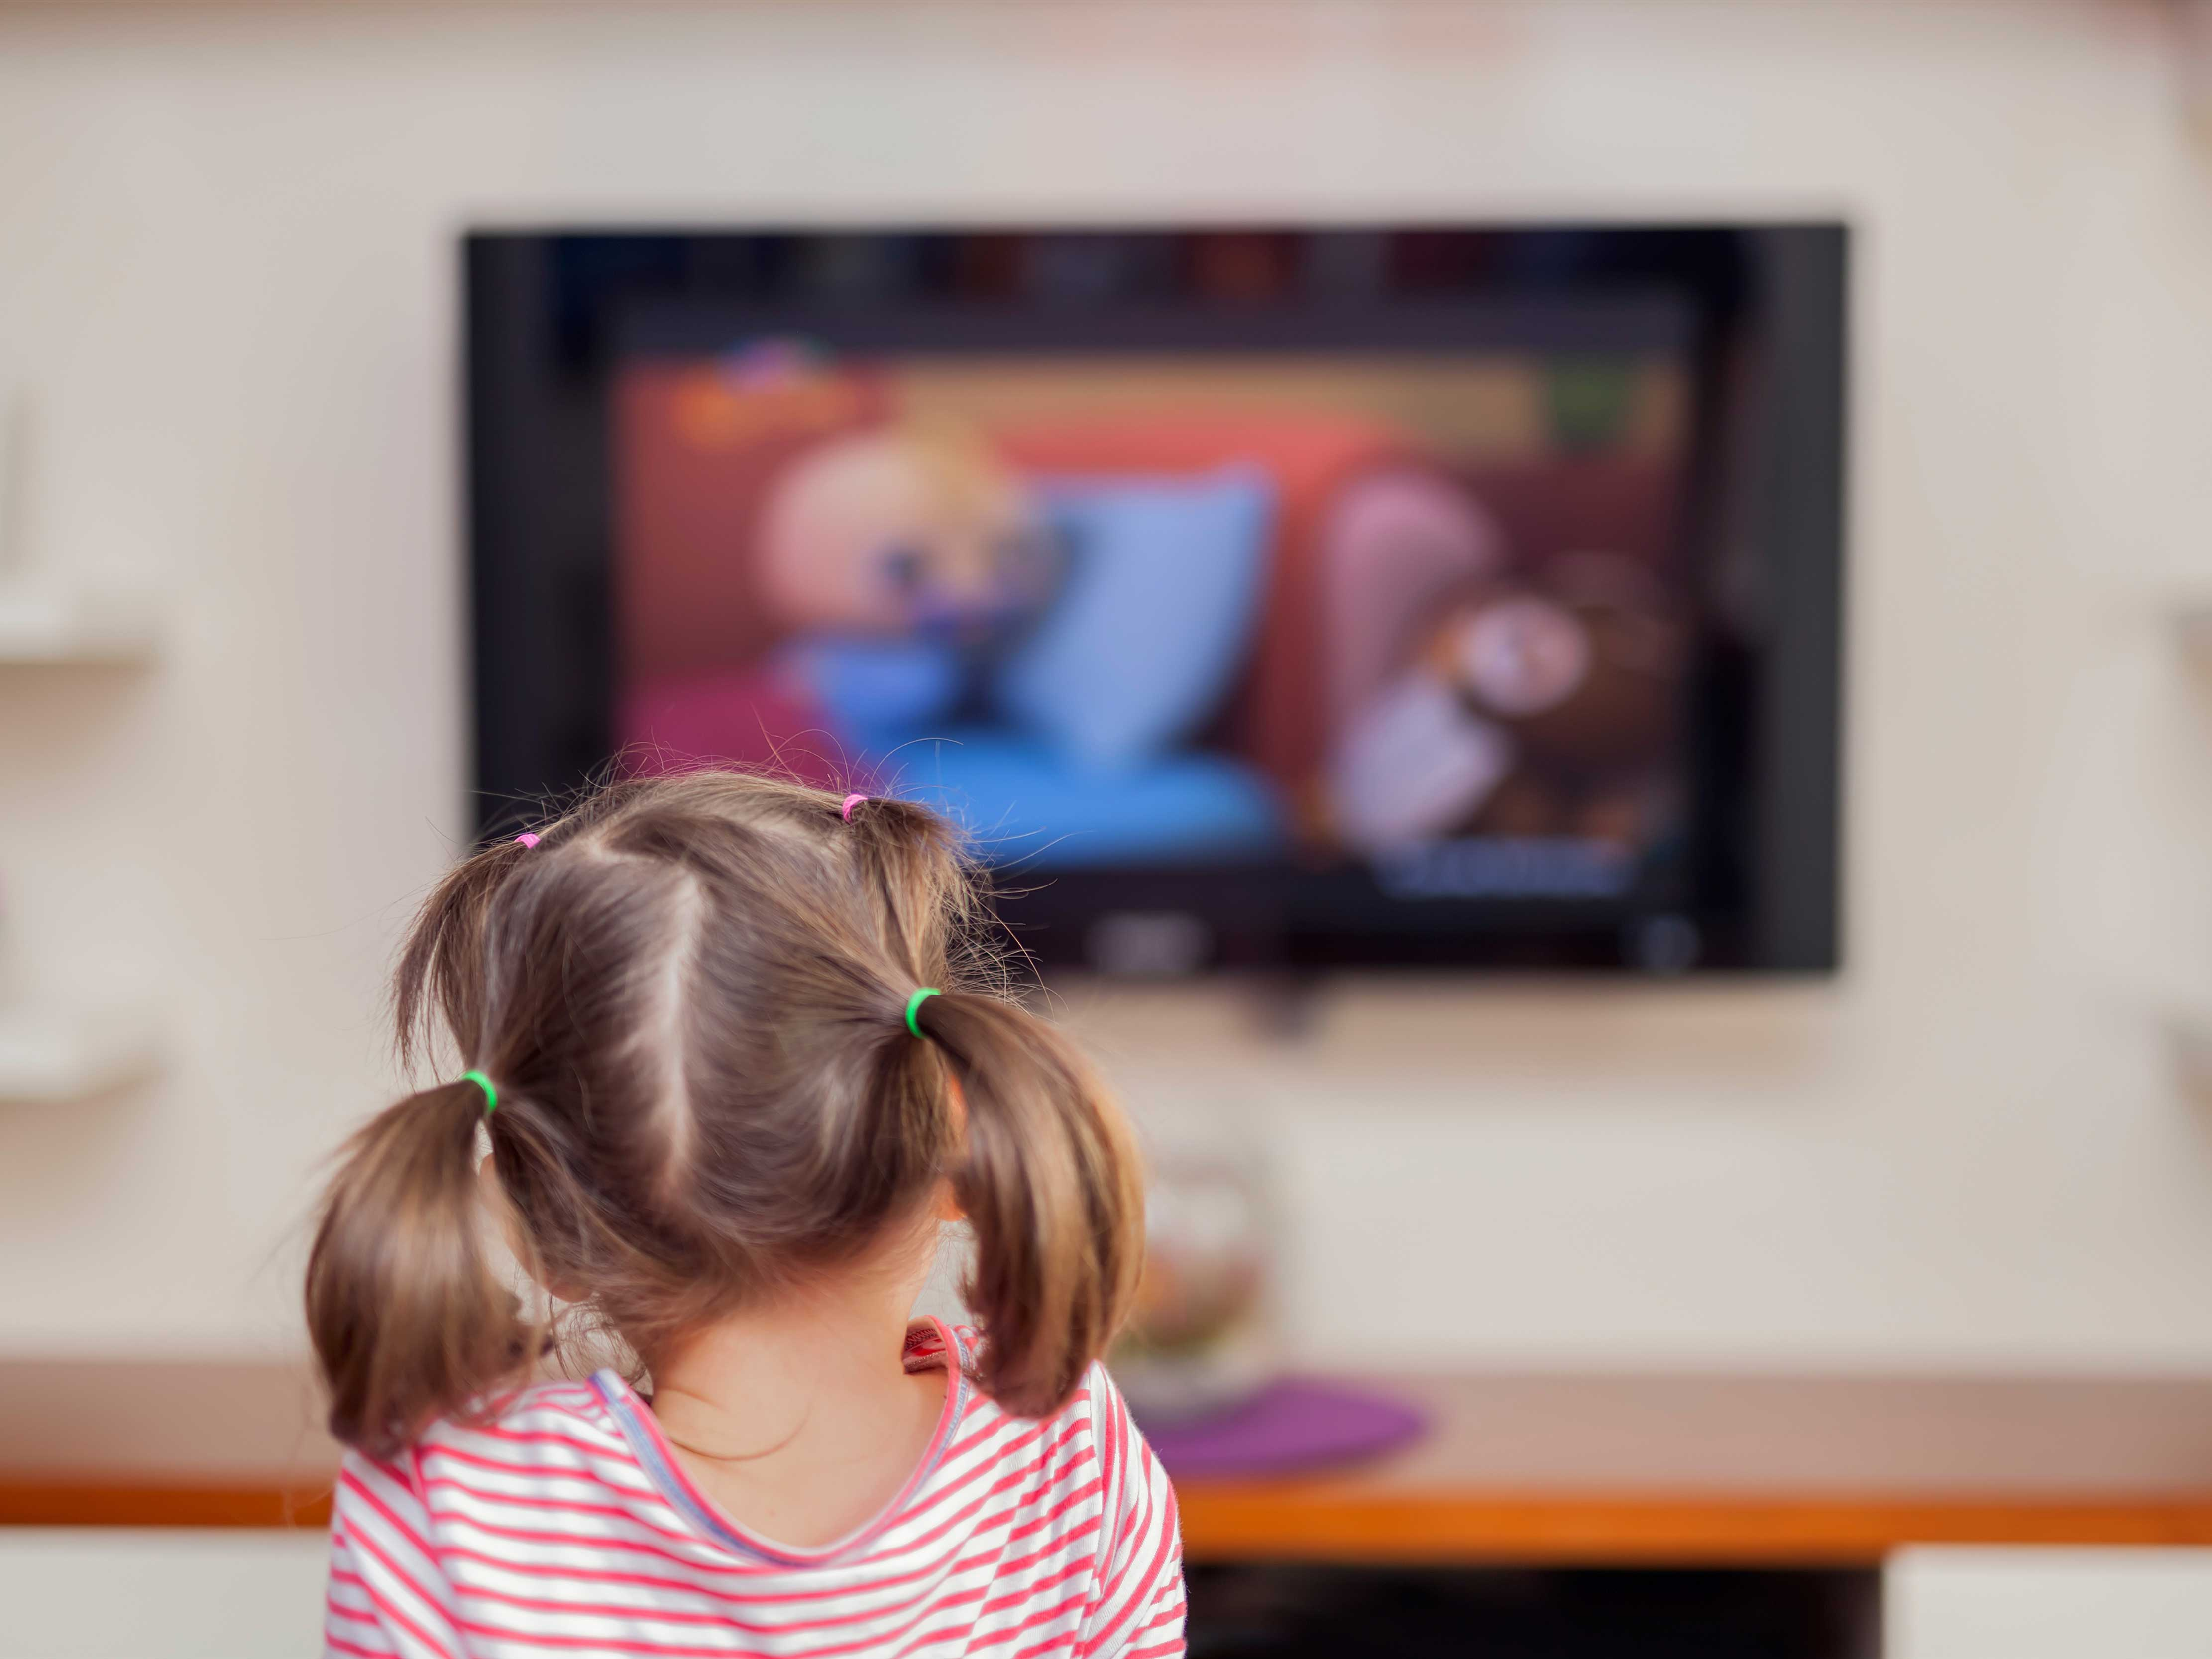 New Food and Beverages Advertising Code bolsters protections for children